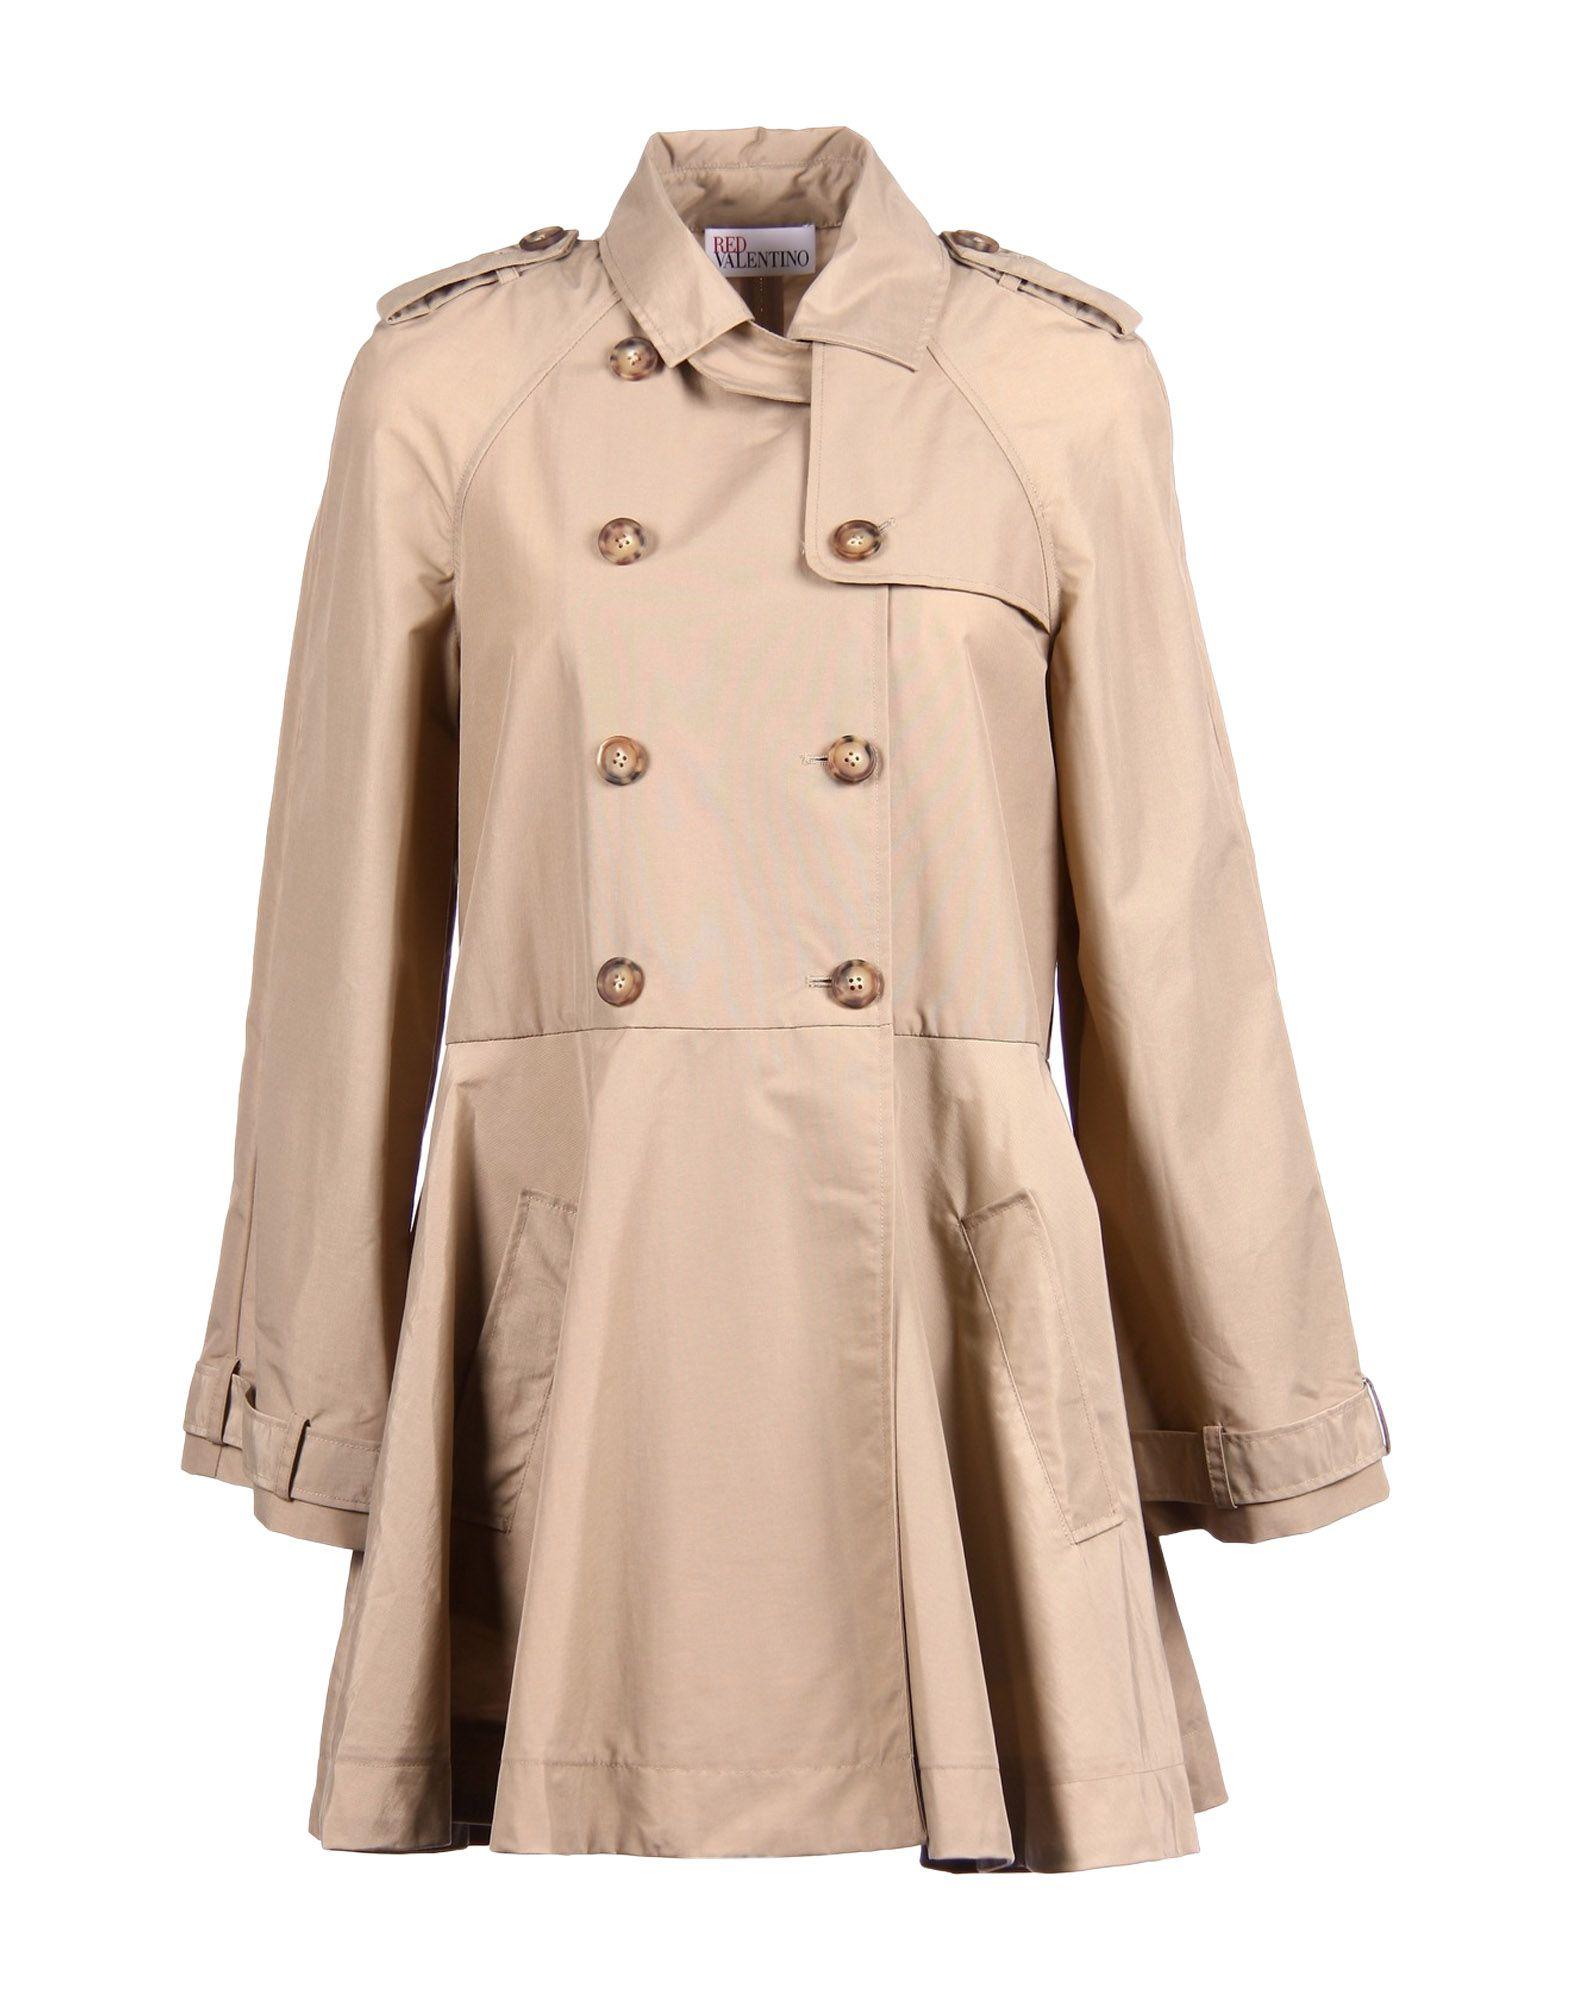 8c4ef4fb985 Redvalentino Double Breasted Pea Coat - Women Redvalentino Double ...